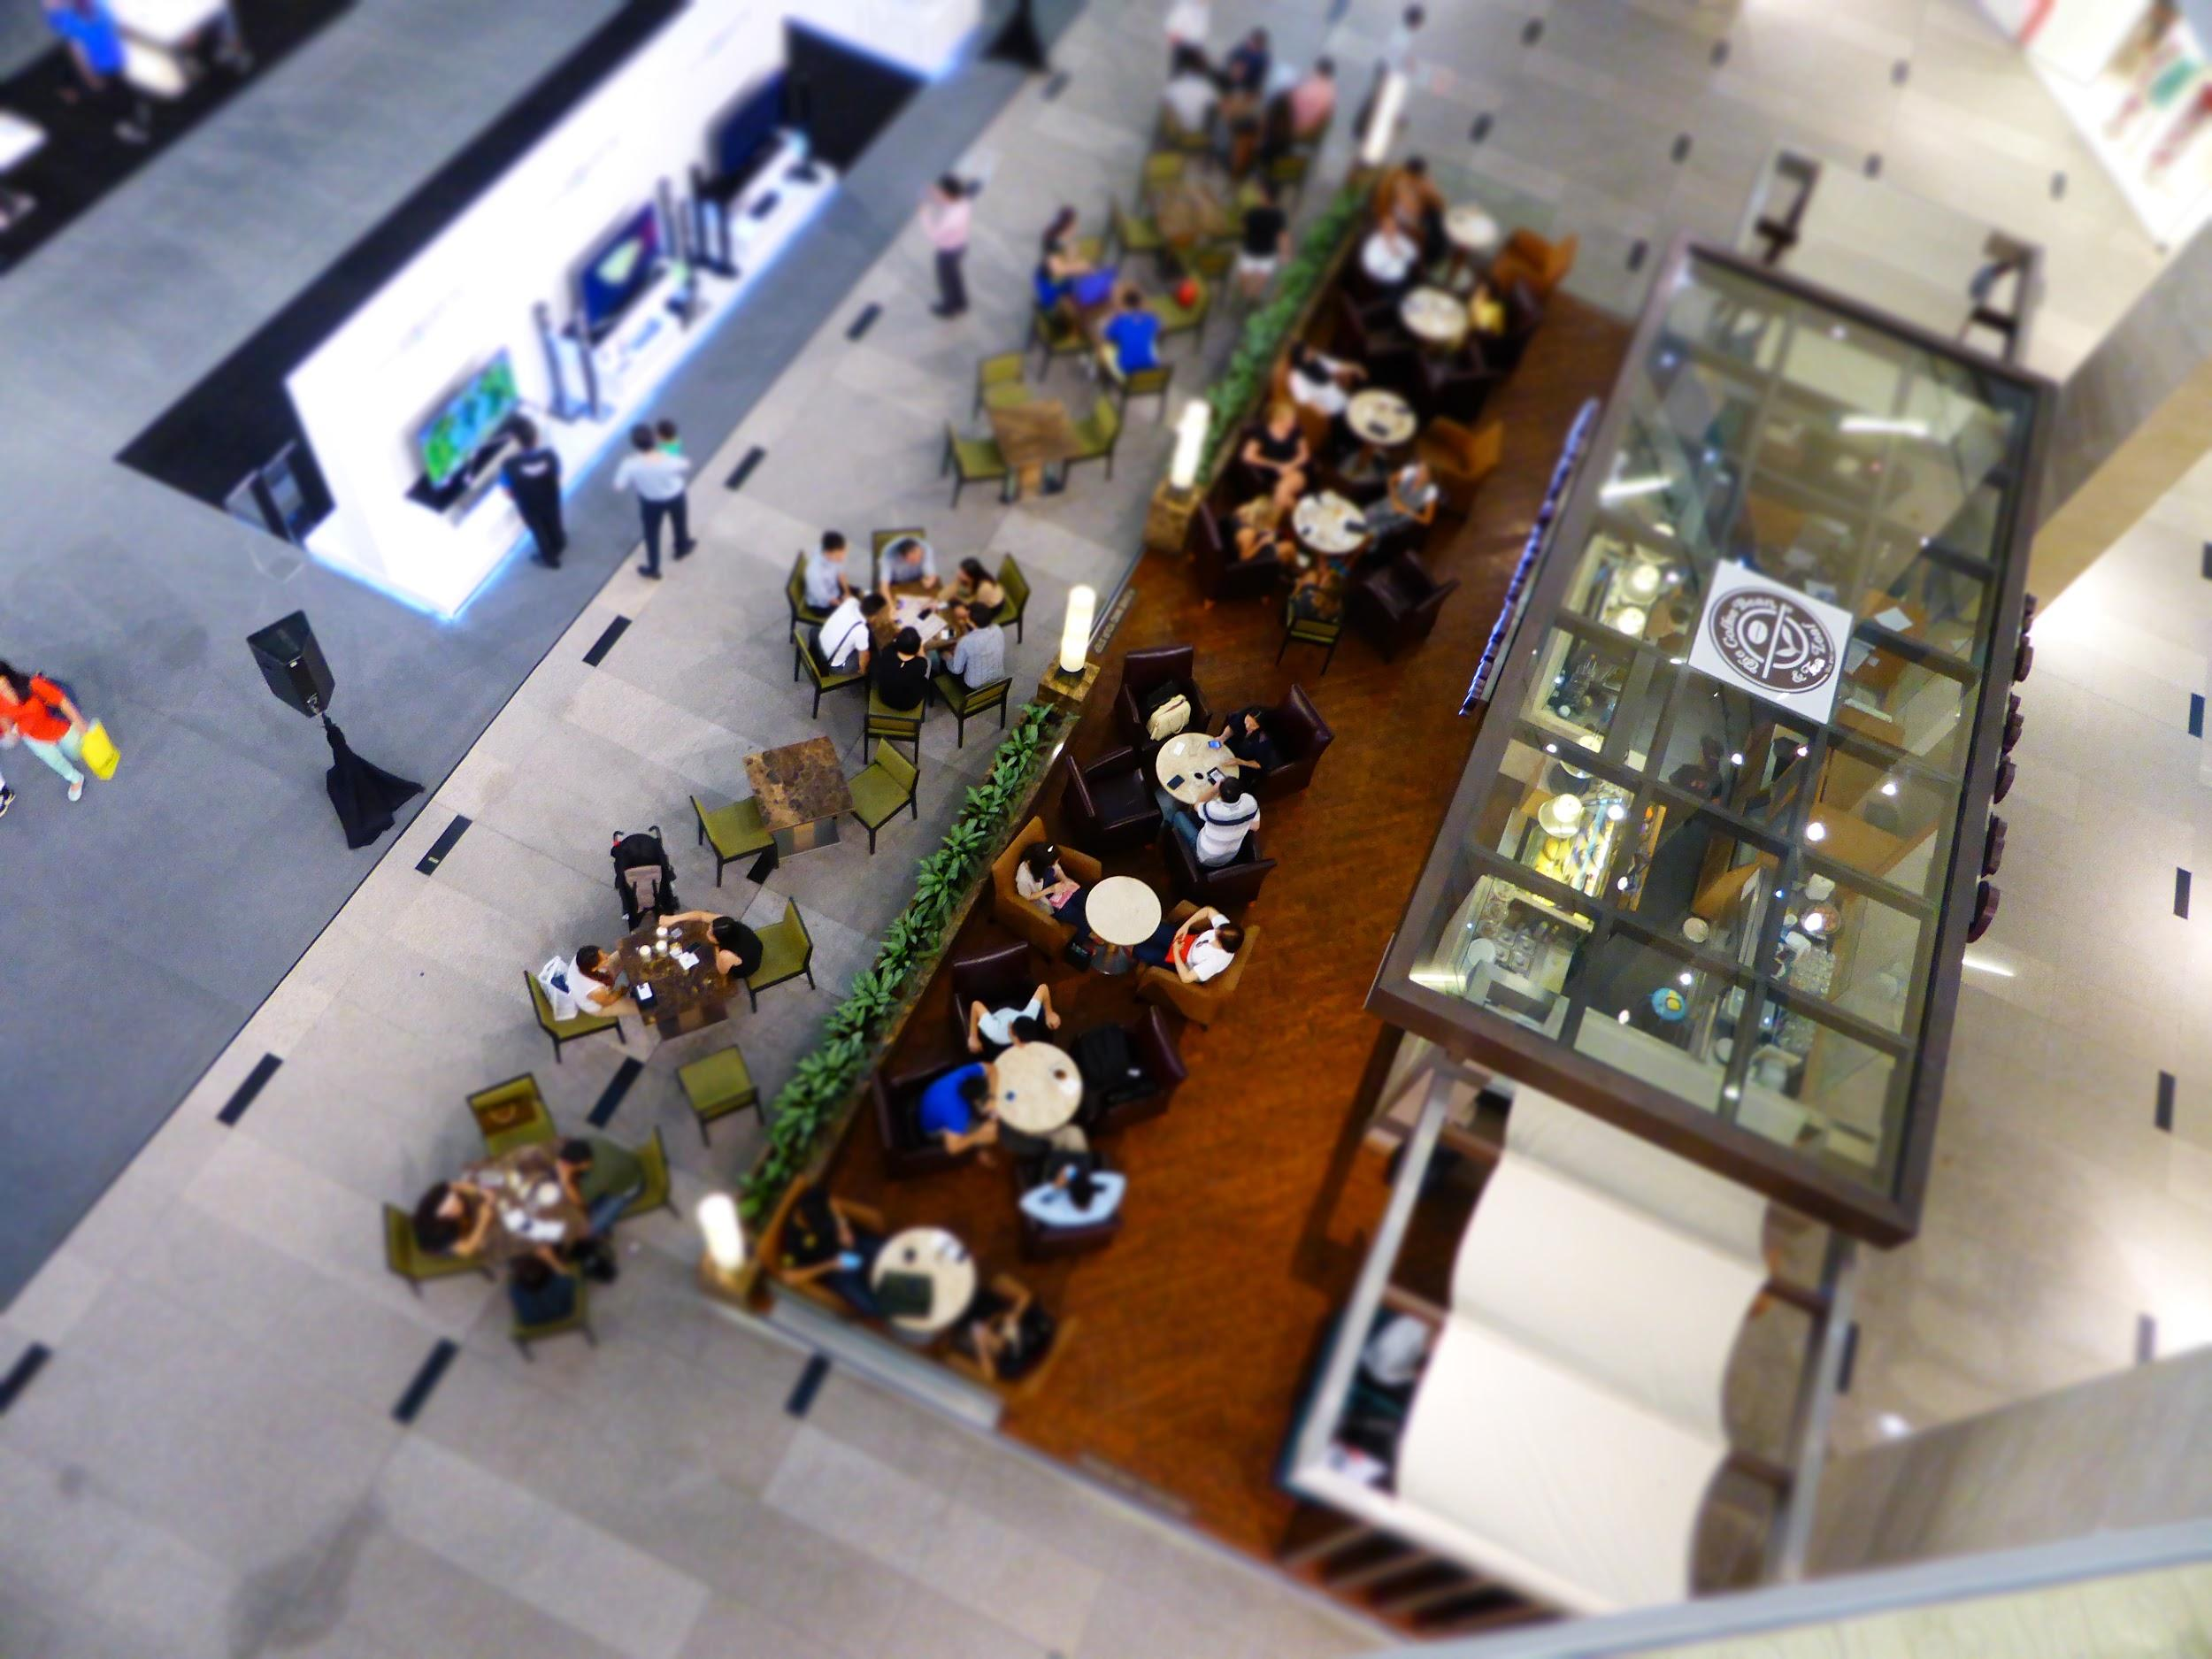 Coffee shops in malls